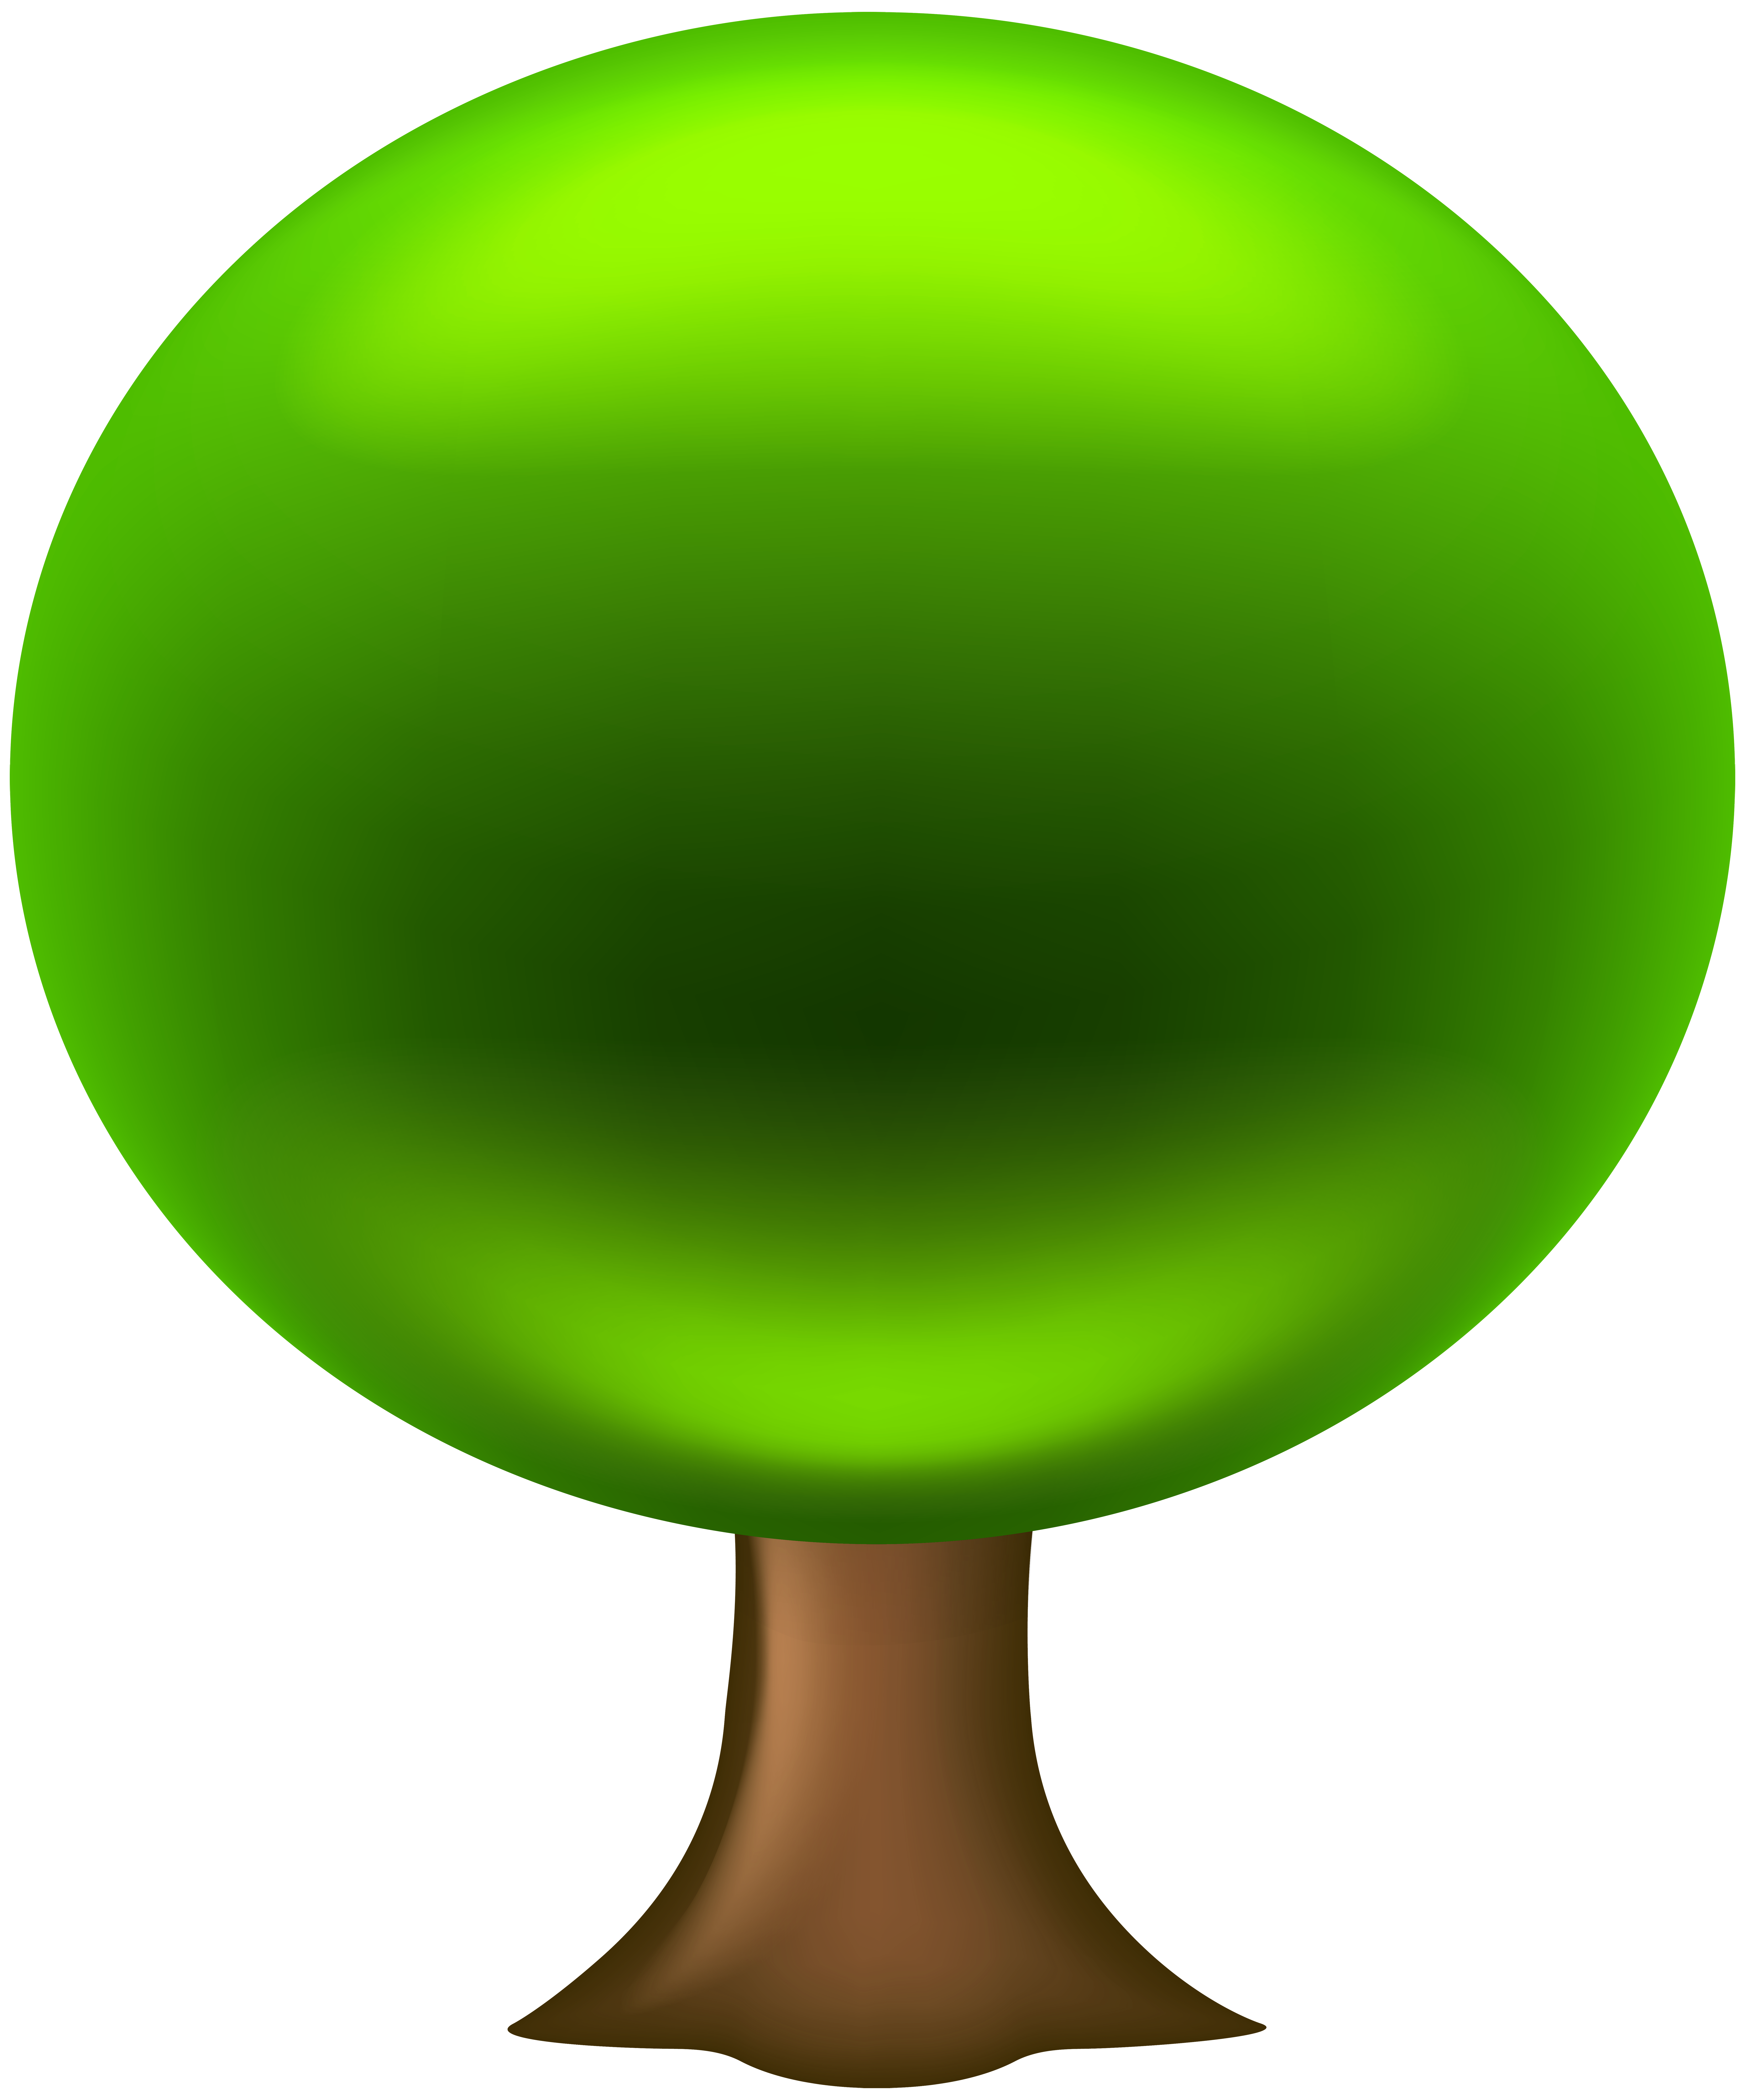 6646x8000 Oval Tree Png Clip Art